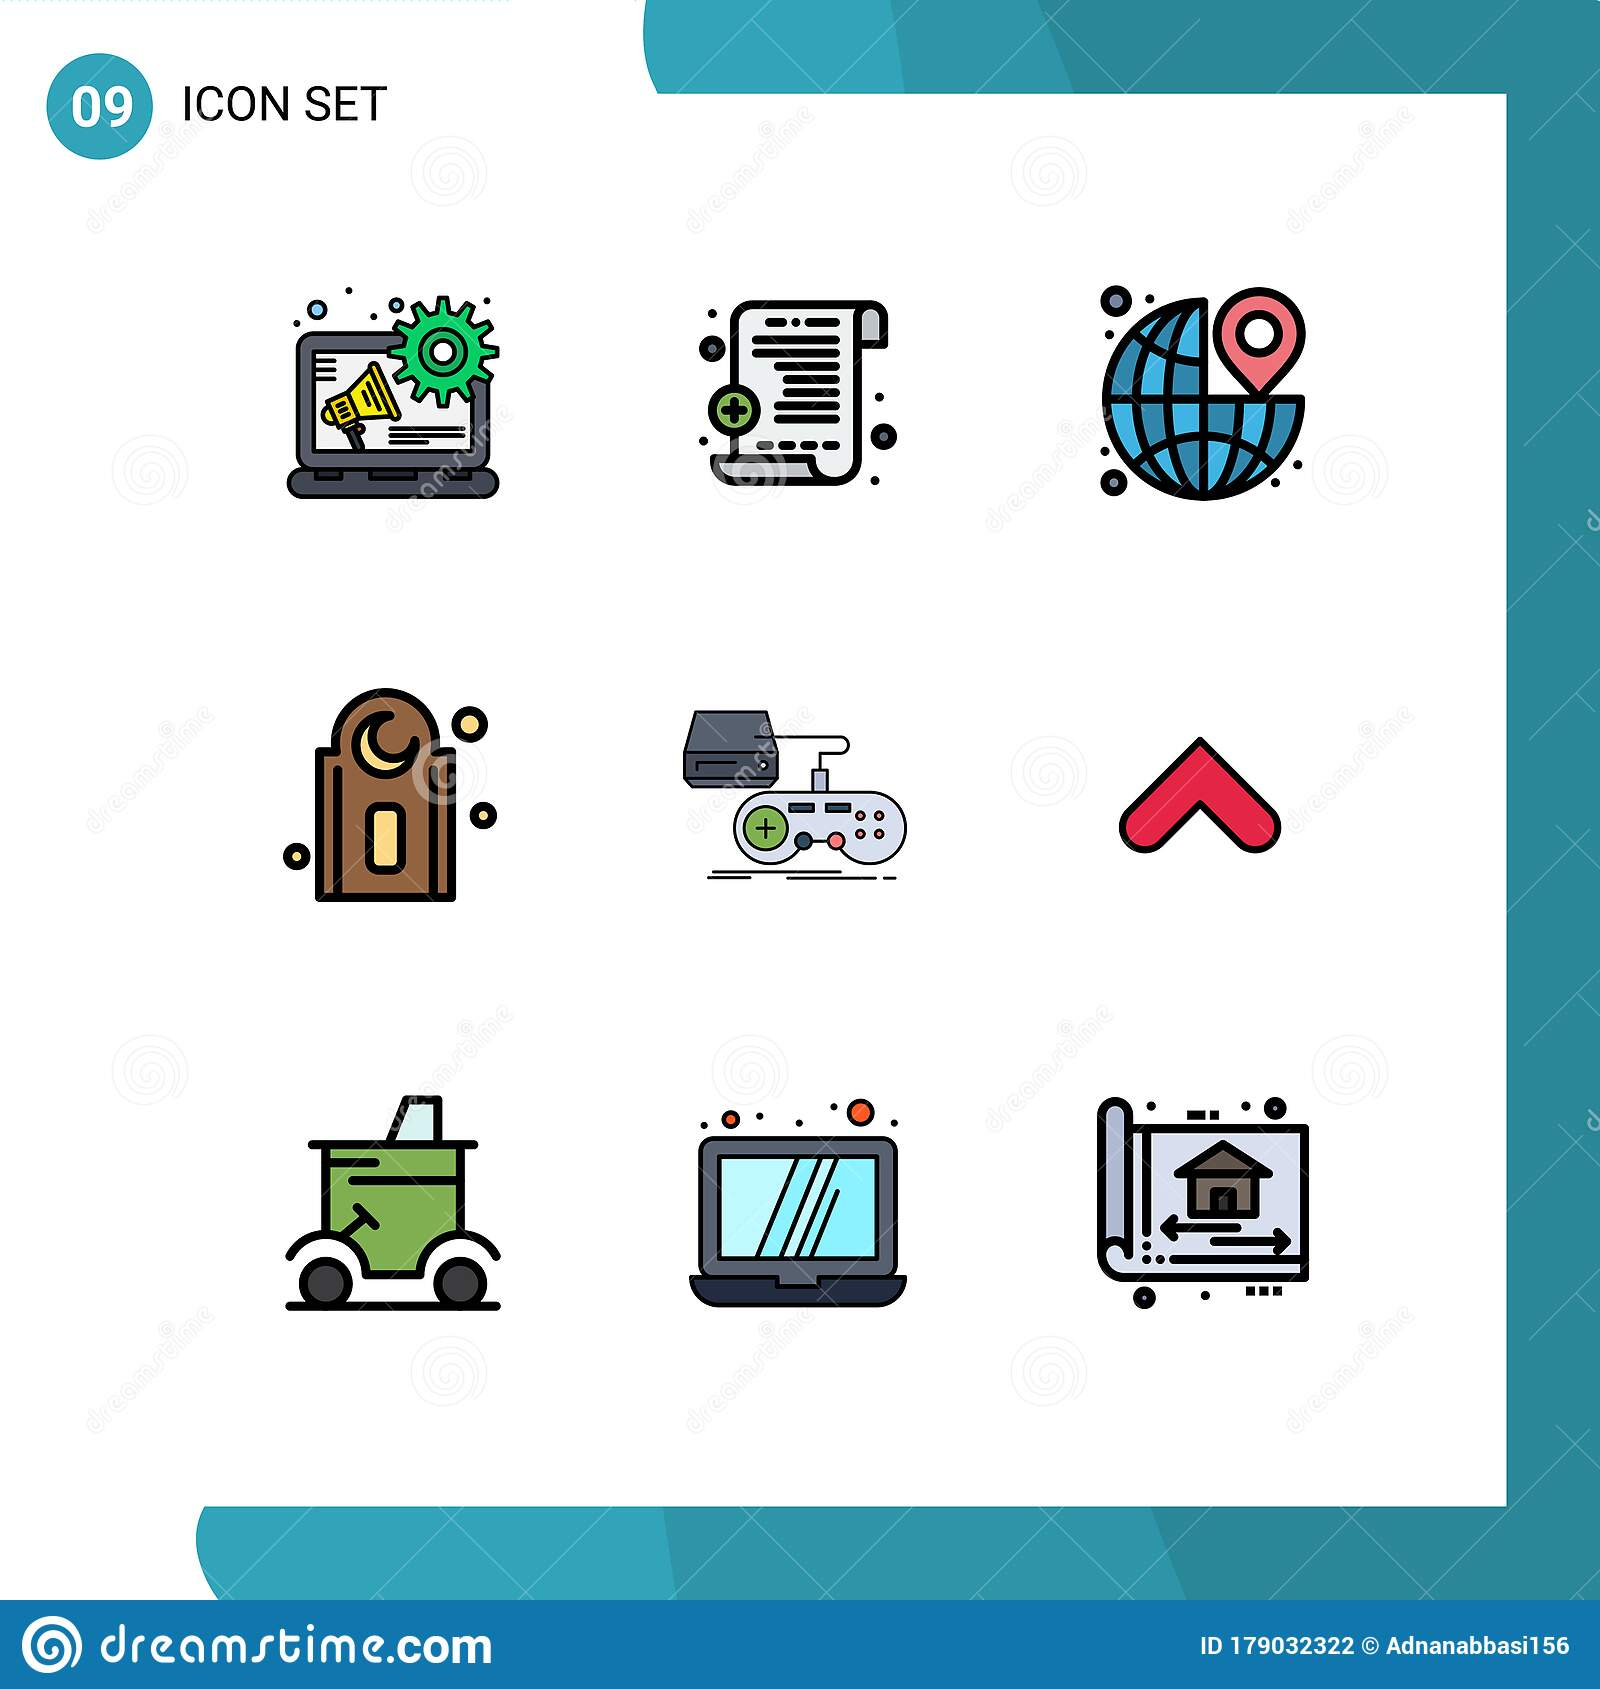 9 Creative Icons Modern Signs And Symbols Of Play Gaming The Game Prayer Stock Vector Illustration Of Play Computer 179032322 See screenshots, read the latest customer reviews, and compare ratings for prayer times. 9 creative icons modern signs and symbols of play gaming the game prayer stock vector illustration of play computer 179032322